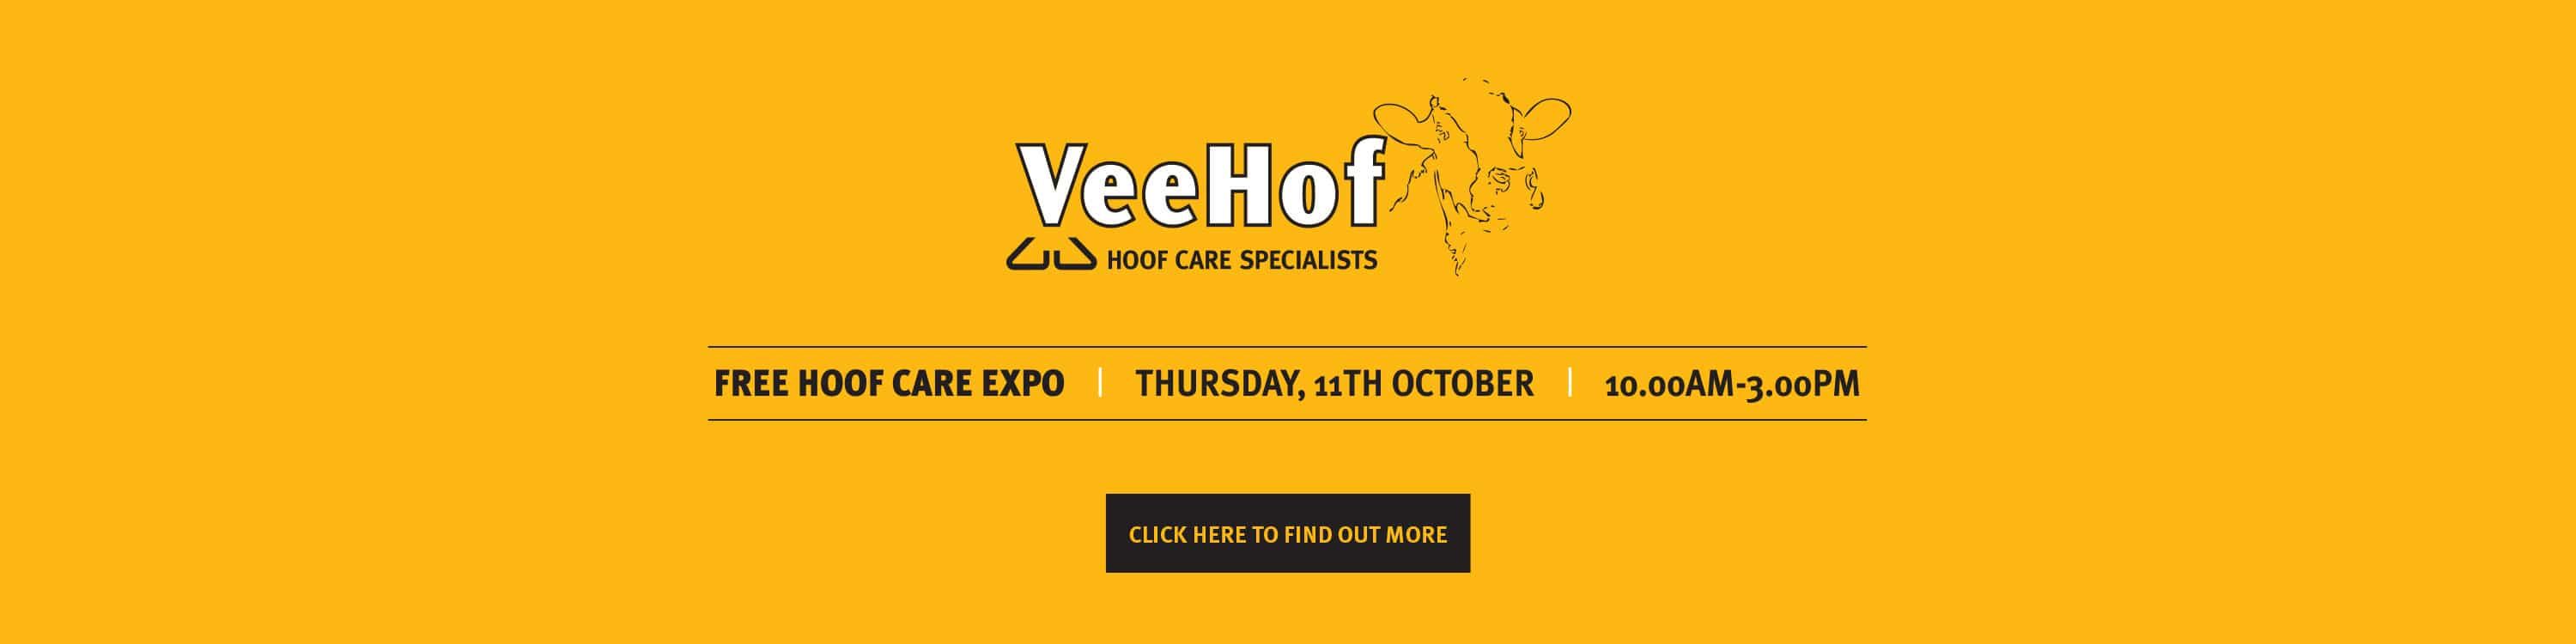 veehof-free-hoof-care-expo-2018-home